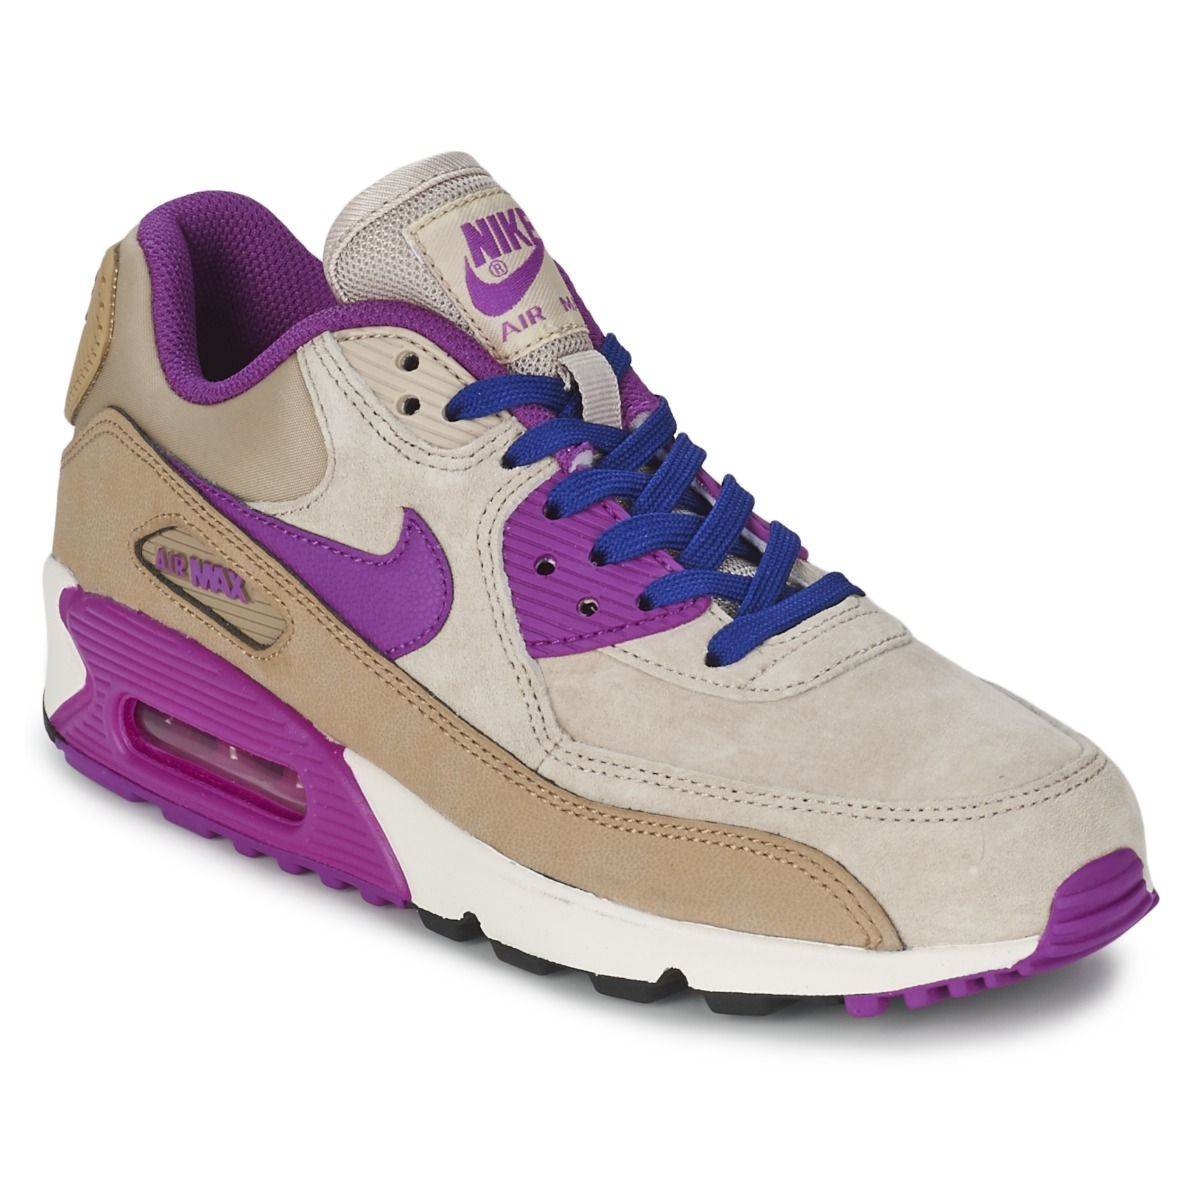 newest aa1d6 96a27 Baskets basses Nike AIR MAX 90 LEATHER W Beige   Violet prix promo Baskets  Femme Spartoo 145.00 €